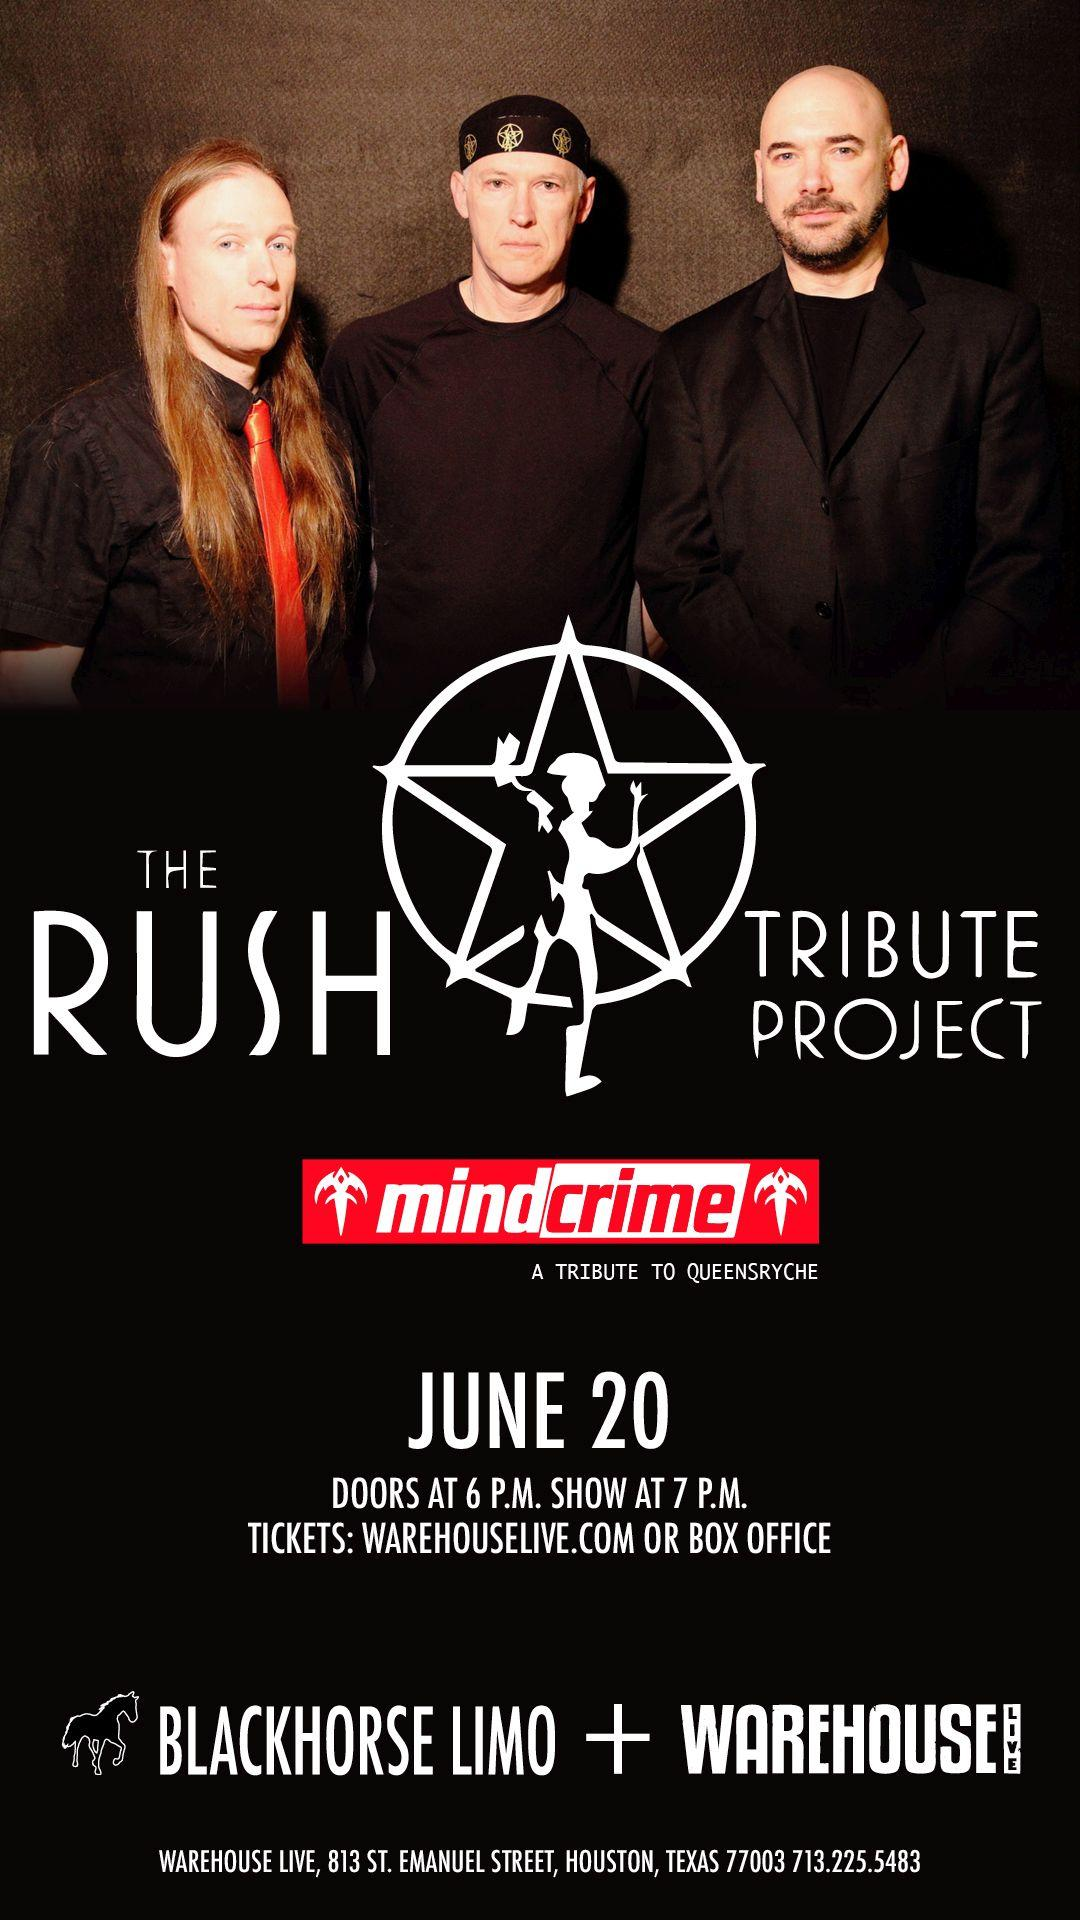 THE RUSH TRIBUTE PROJECT / MINDCRIME (TRIBUTE TO QUEENSRYCHE)